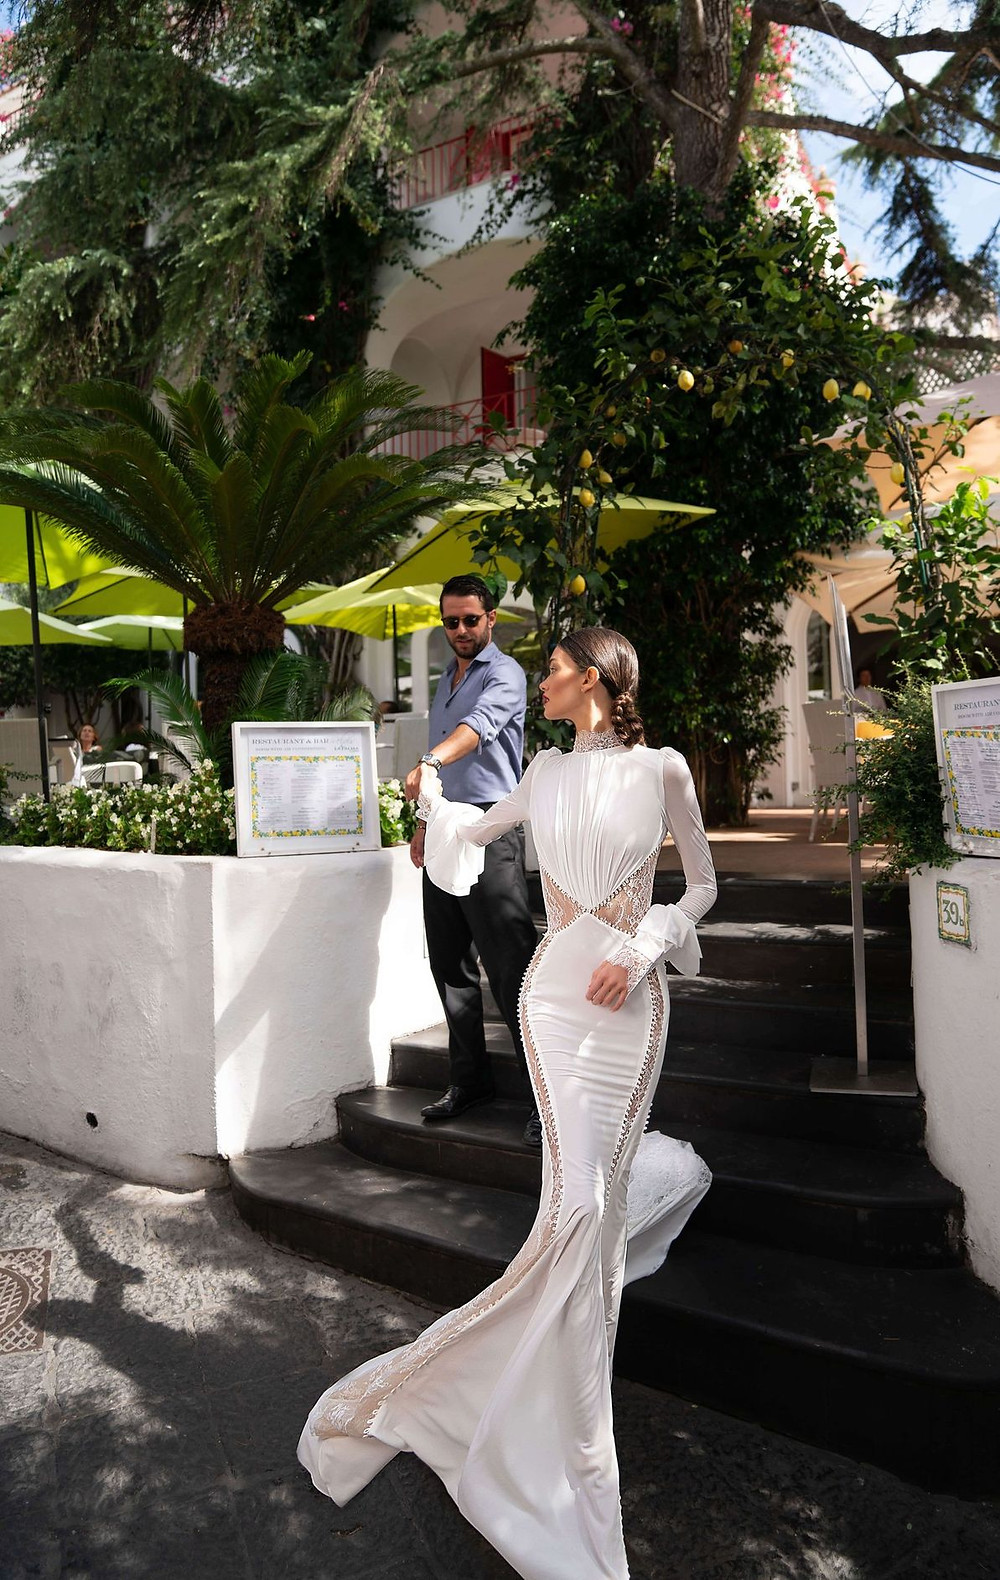 An Inbal Dror mesh mermaid wedding dress with long sleeves and lace